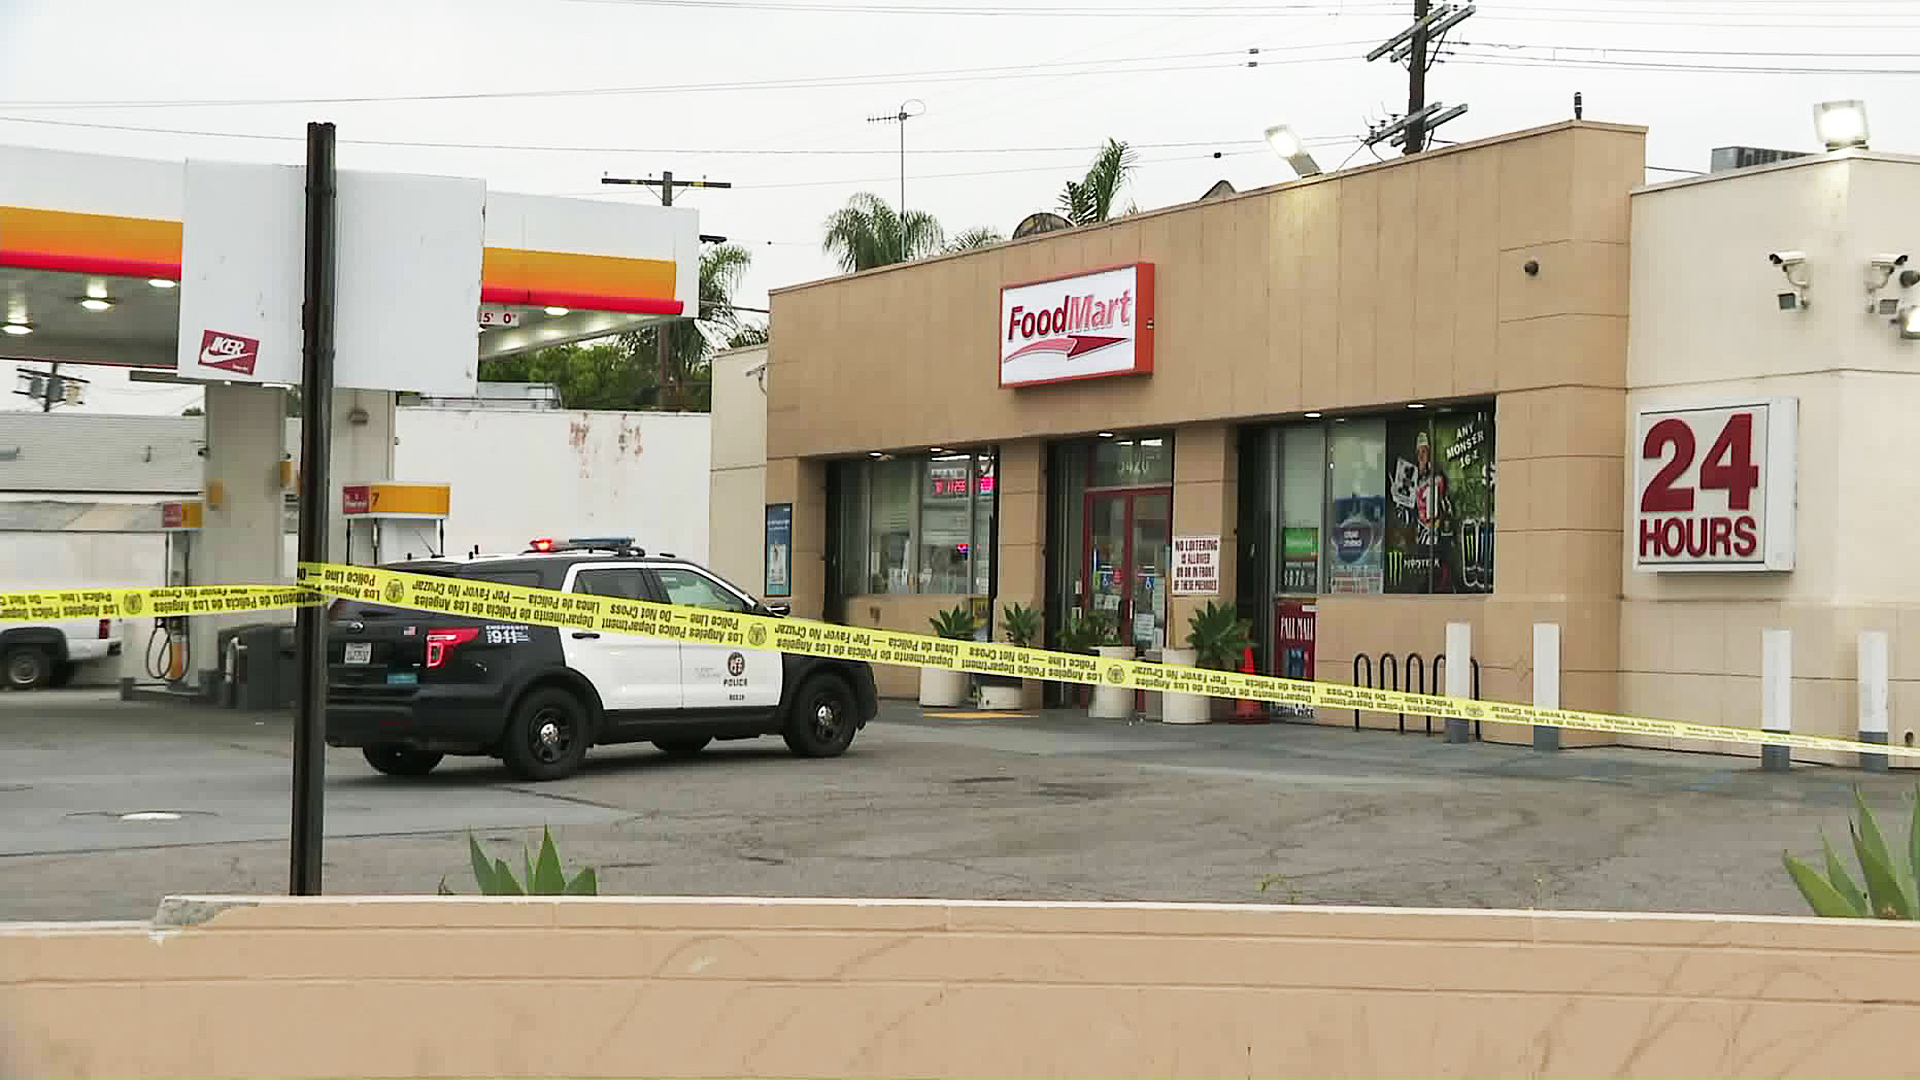 2 Men Charged With Murder In Fatal Shooting Of 52 Year Old Gas Station Clerk During Mid City Robbery Ktla